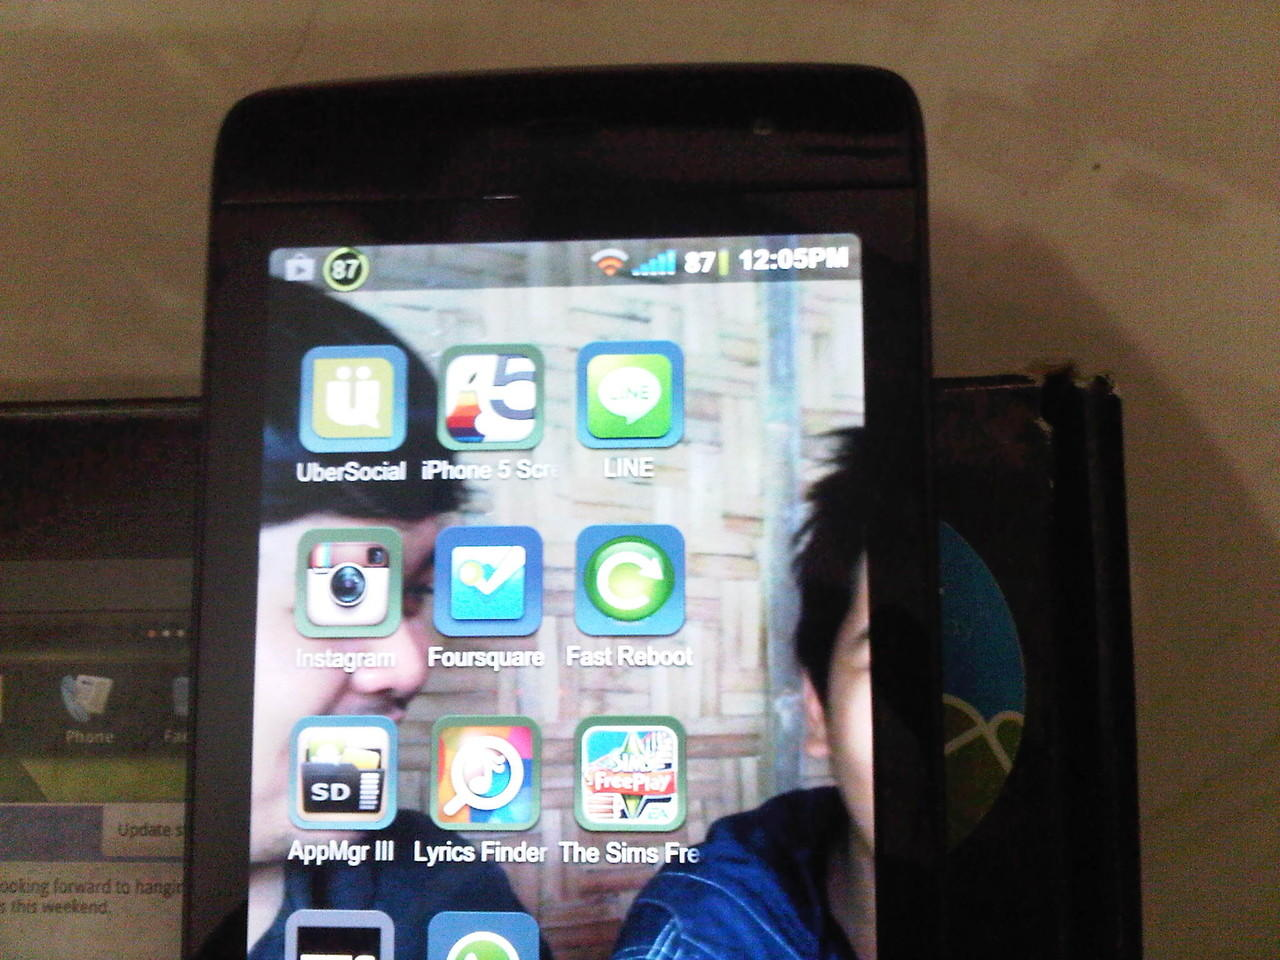 ANDROID DELL STREAK 5 BLACK CARBON EDITION 2ND